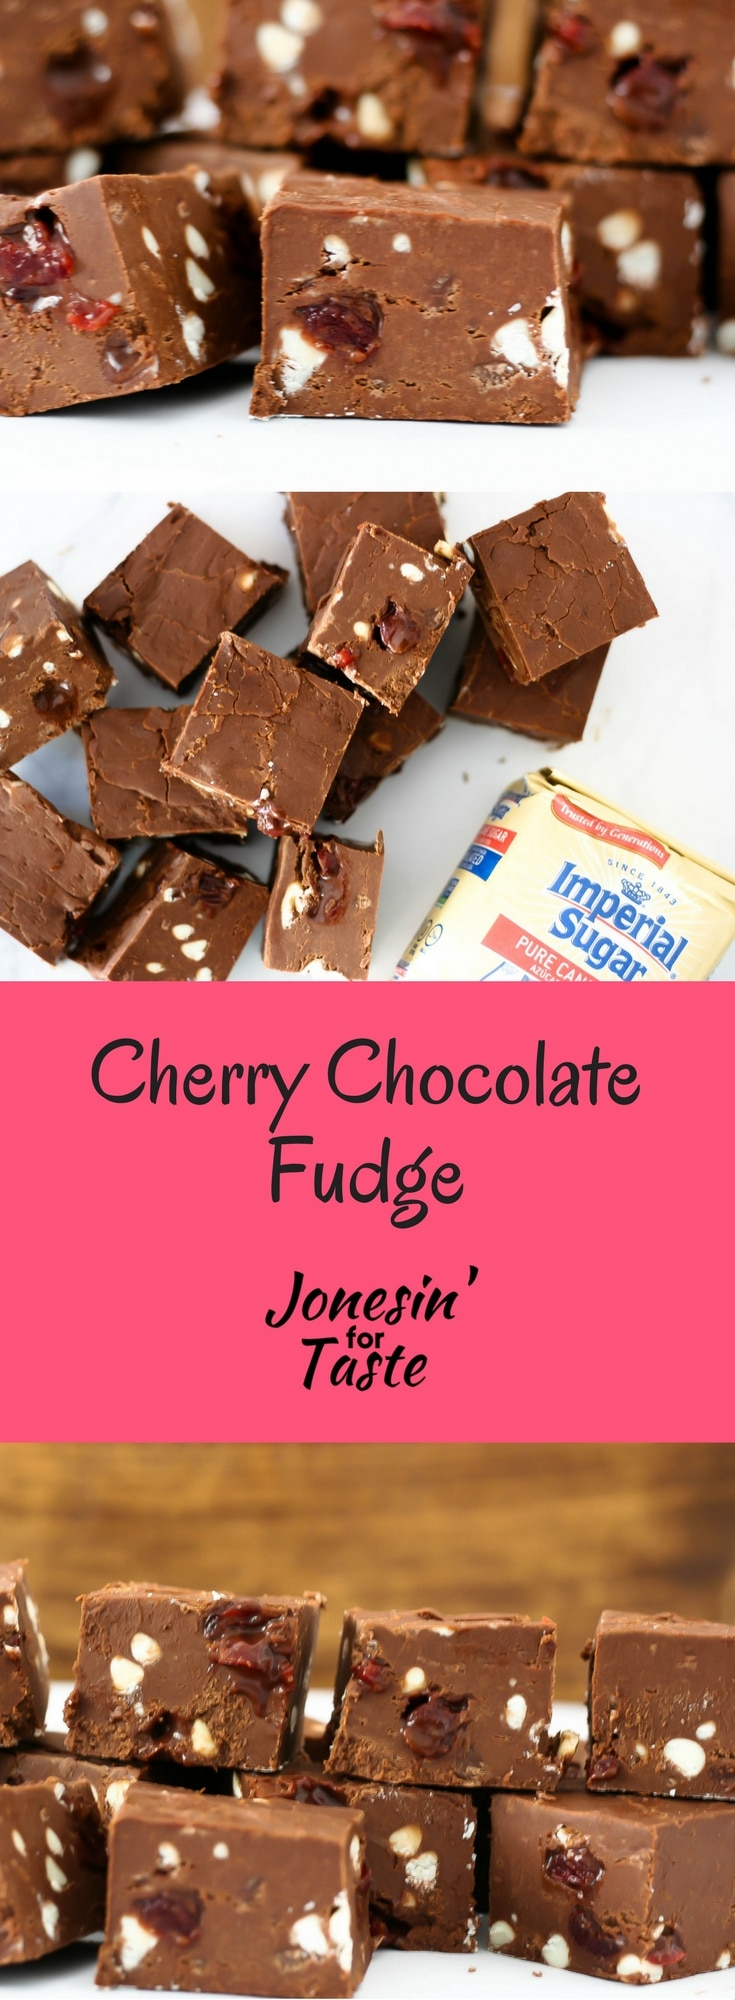 Cherry Chocolate Fudge with White Chocolate Chips is a decadent dessert filled with maraschino cherries and white chocolate. #choctoberfest